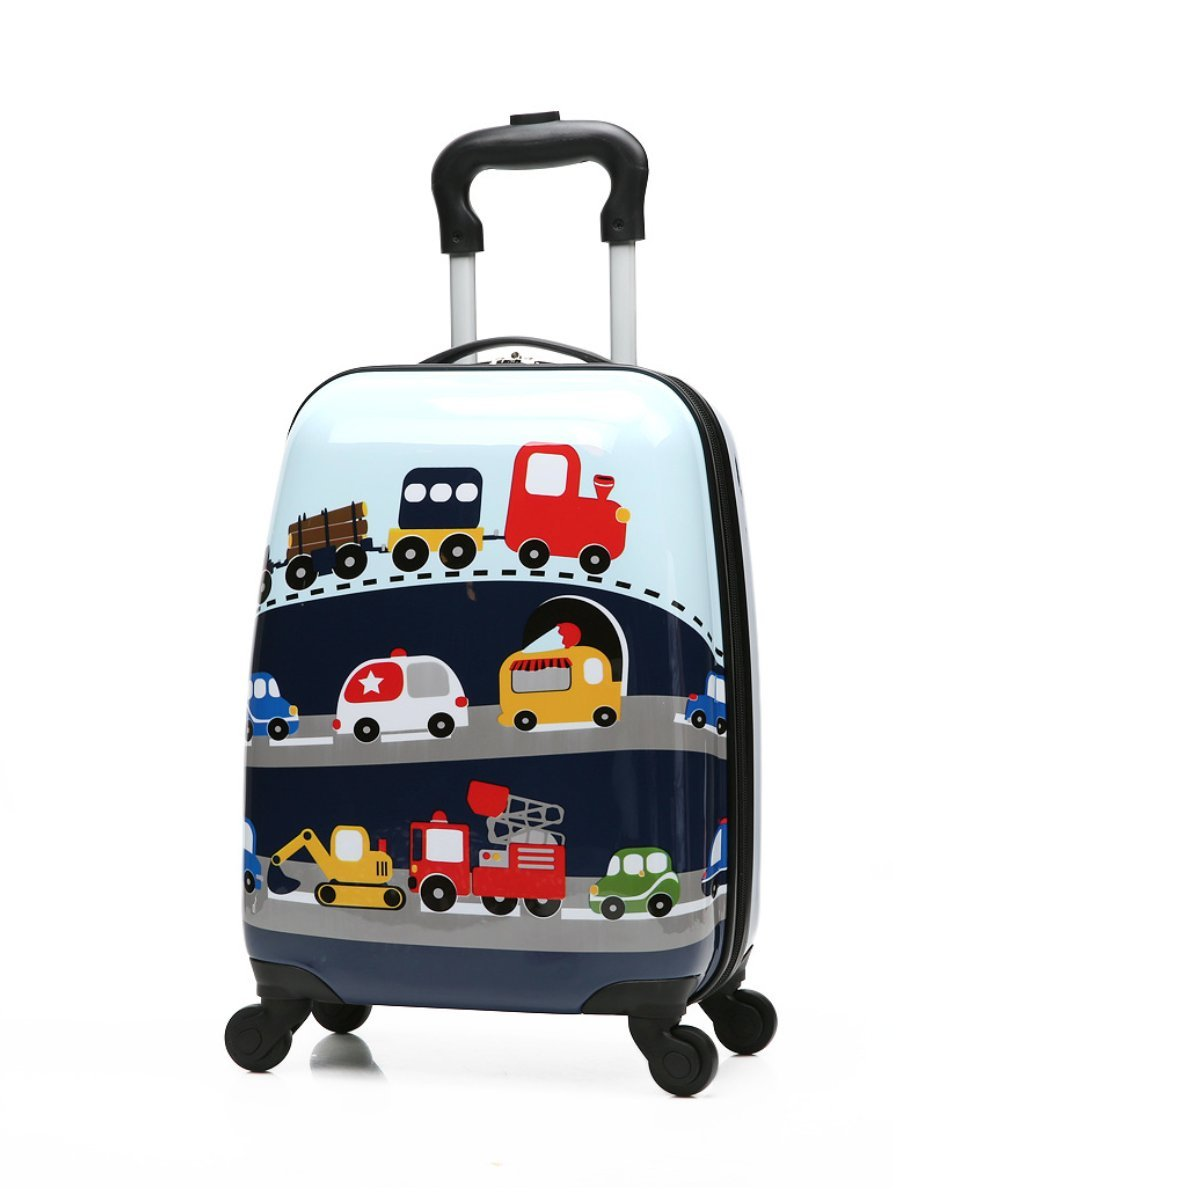 Winsday 18'' Kids Carry On Luggage Upright Hard Side Hard Shell Suitcase Travel Trolley Luggages ABS for School Girls Boys Teens (Car Pattern) by Winsday